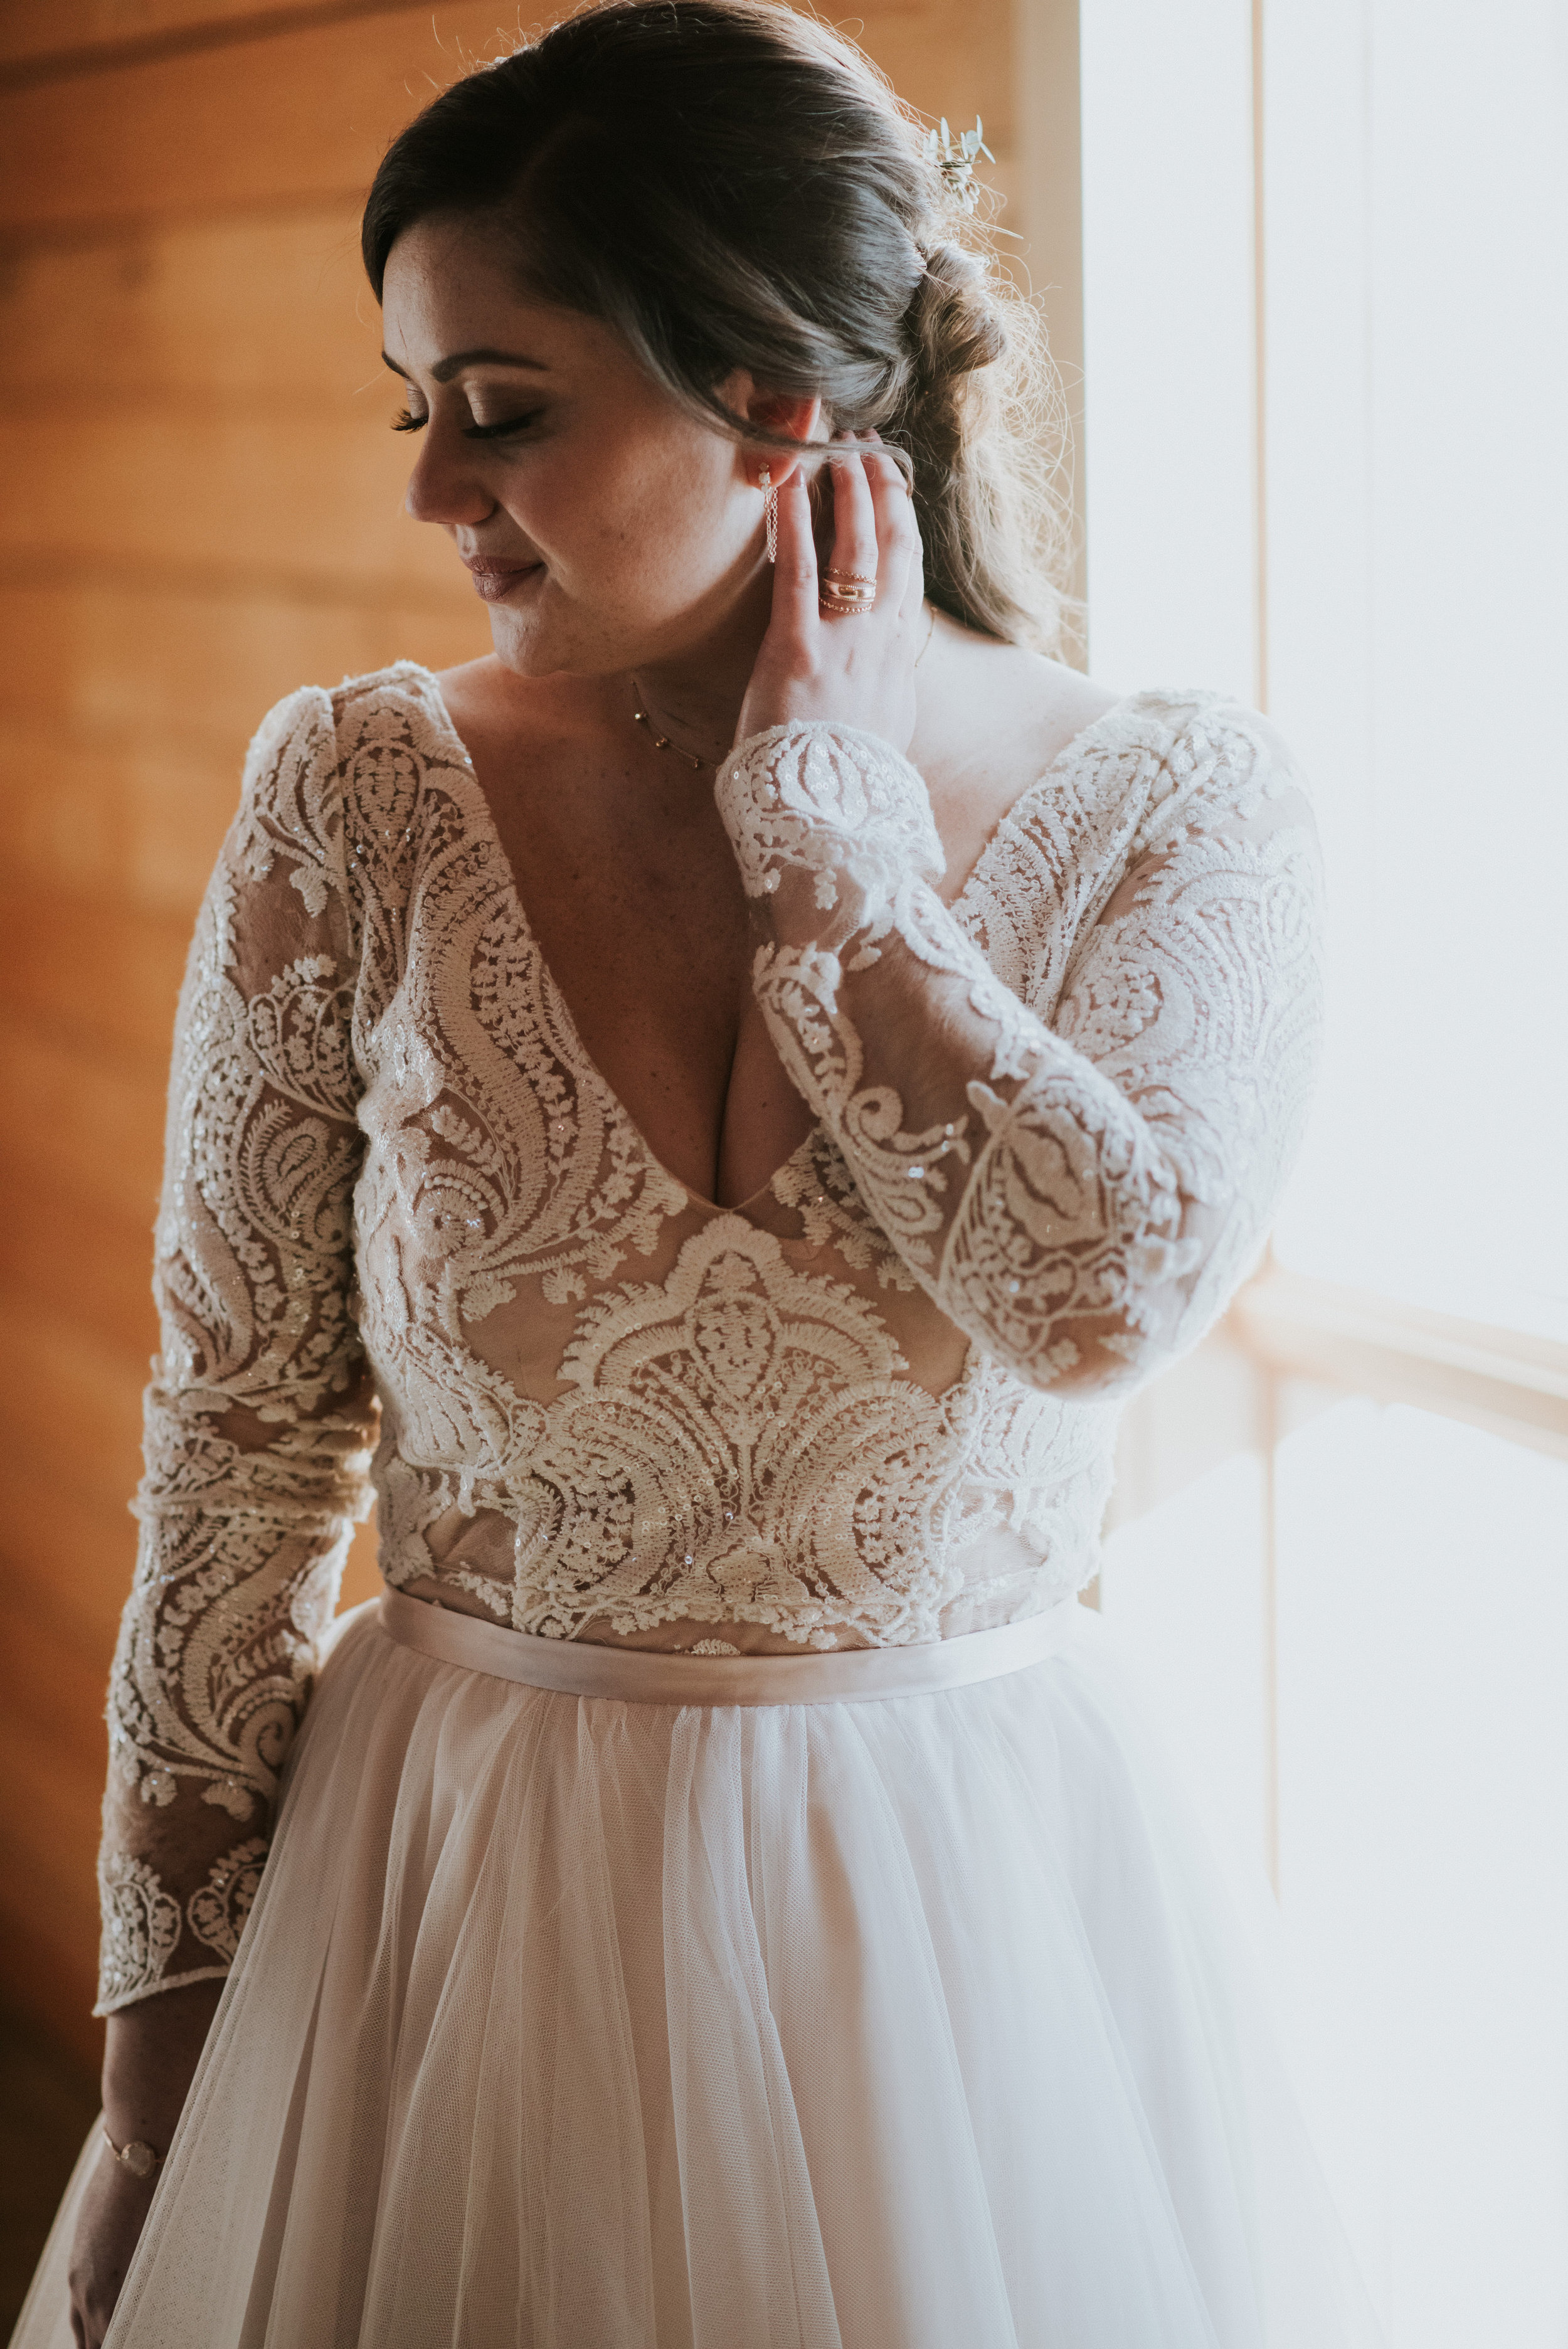 calgary bride gown lace top beauty